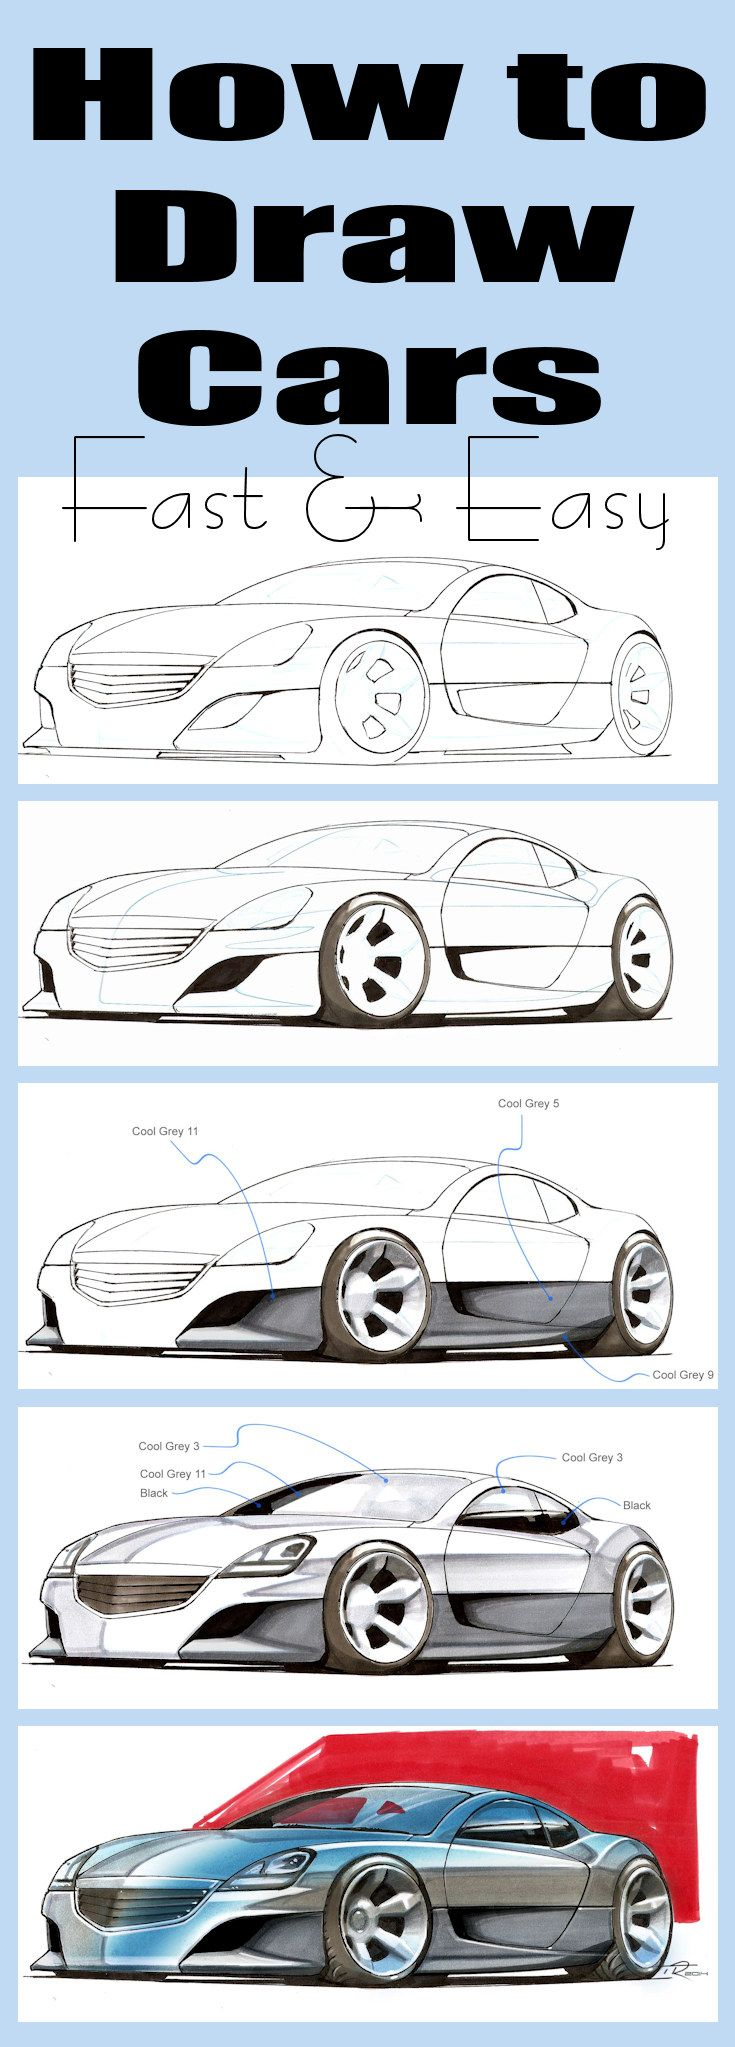 Learn to draw cars in 30 minutes ideal for beginners pencil learn to draw cars in 30 minutes ideal for beginners ccuart Gallery